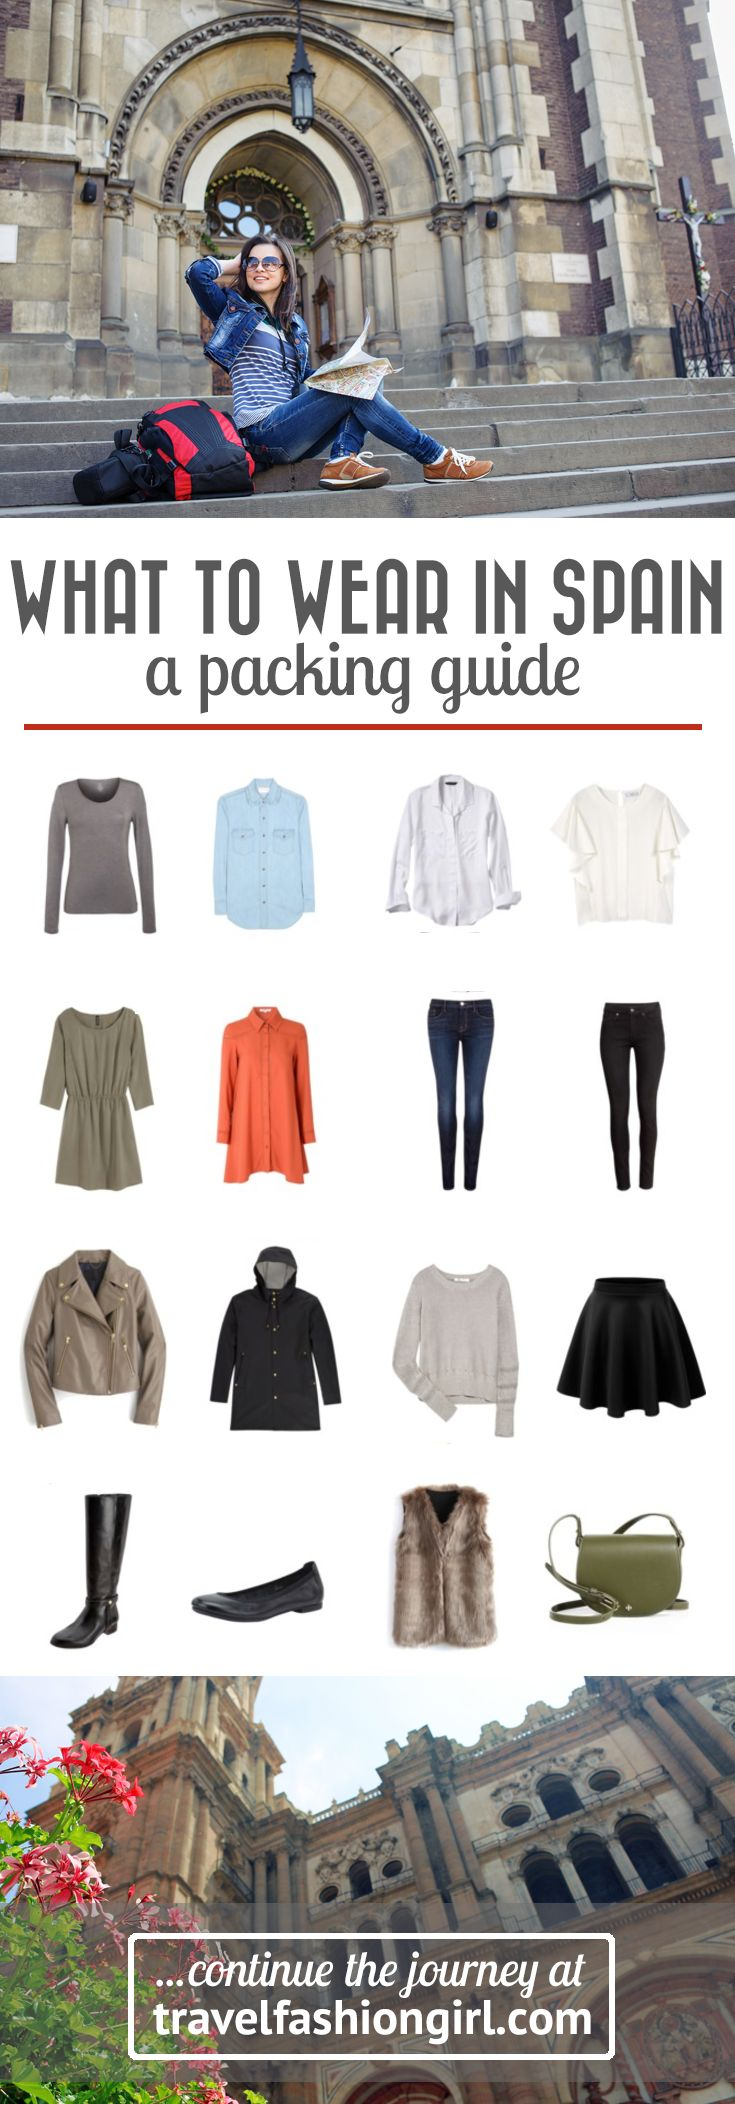 If you're planning a trip to Spain this Winter you need this packing list. We went to a local to get exactly what you need to pack for your trip to Spain. | travelfashiongirl.com